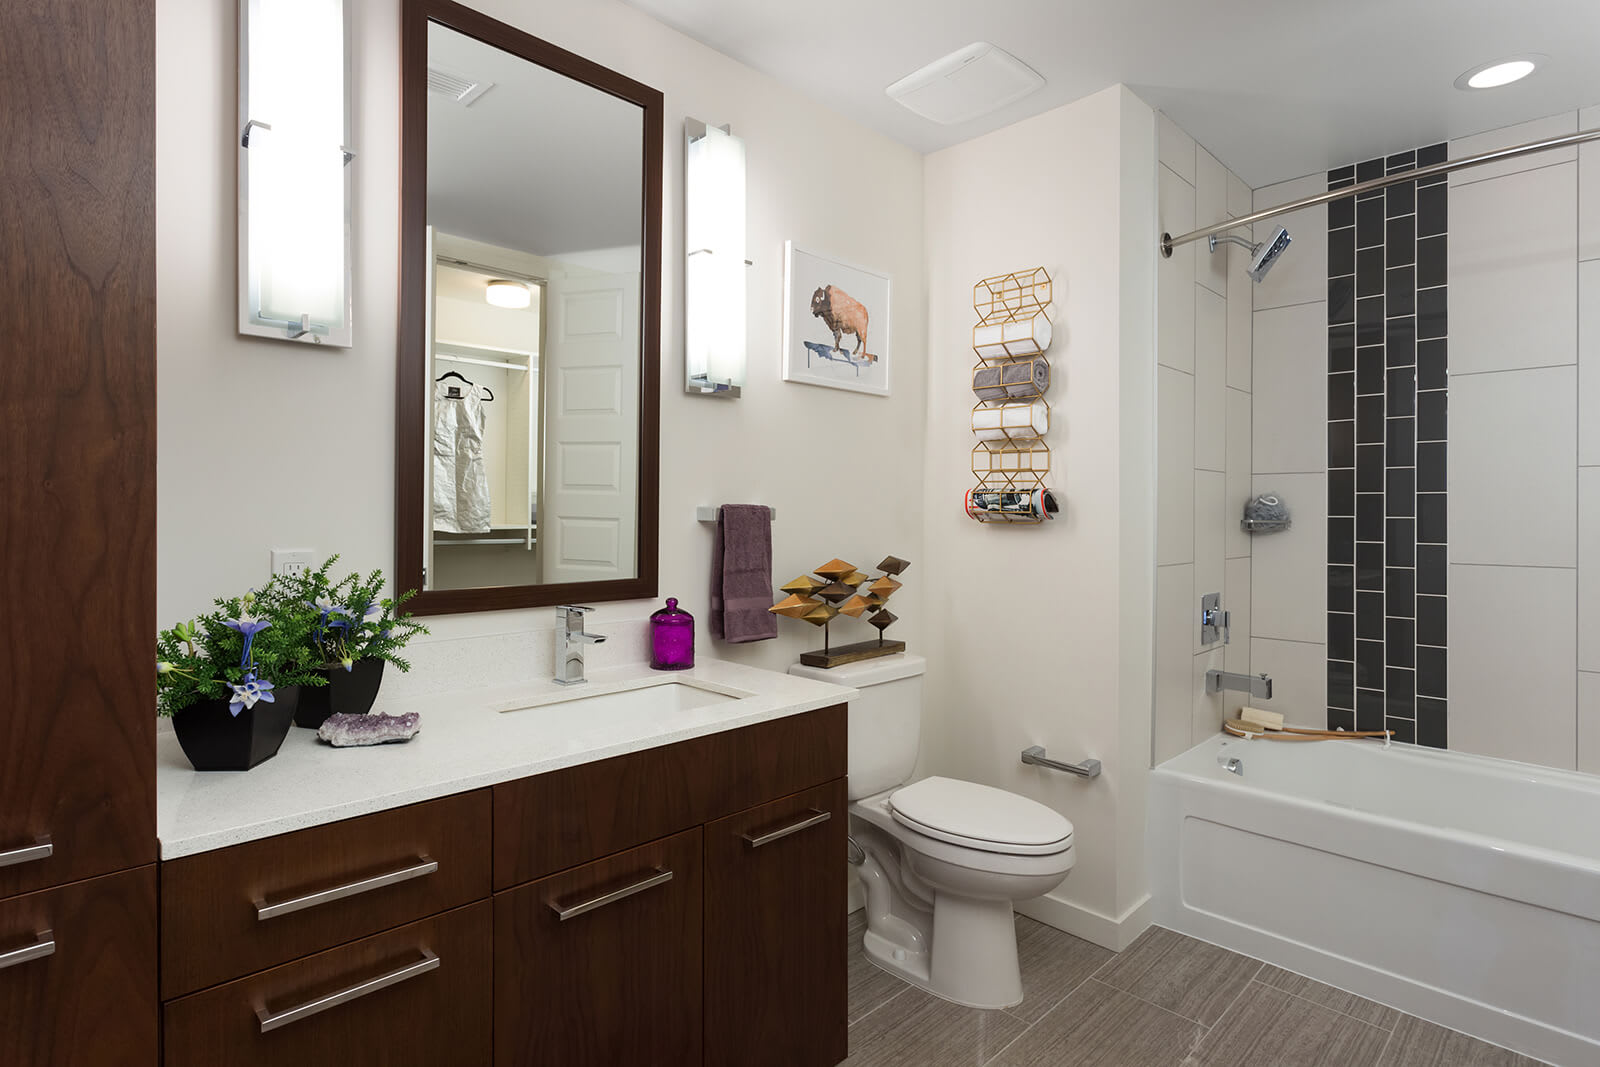 Large Soaking Tubs with Rainwater Shower Heads at 1000 Speer by Windsor, Denver, 80204